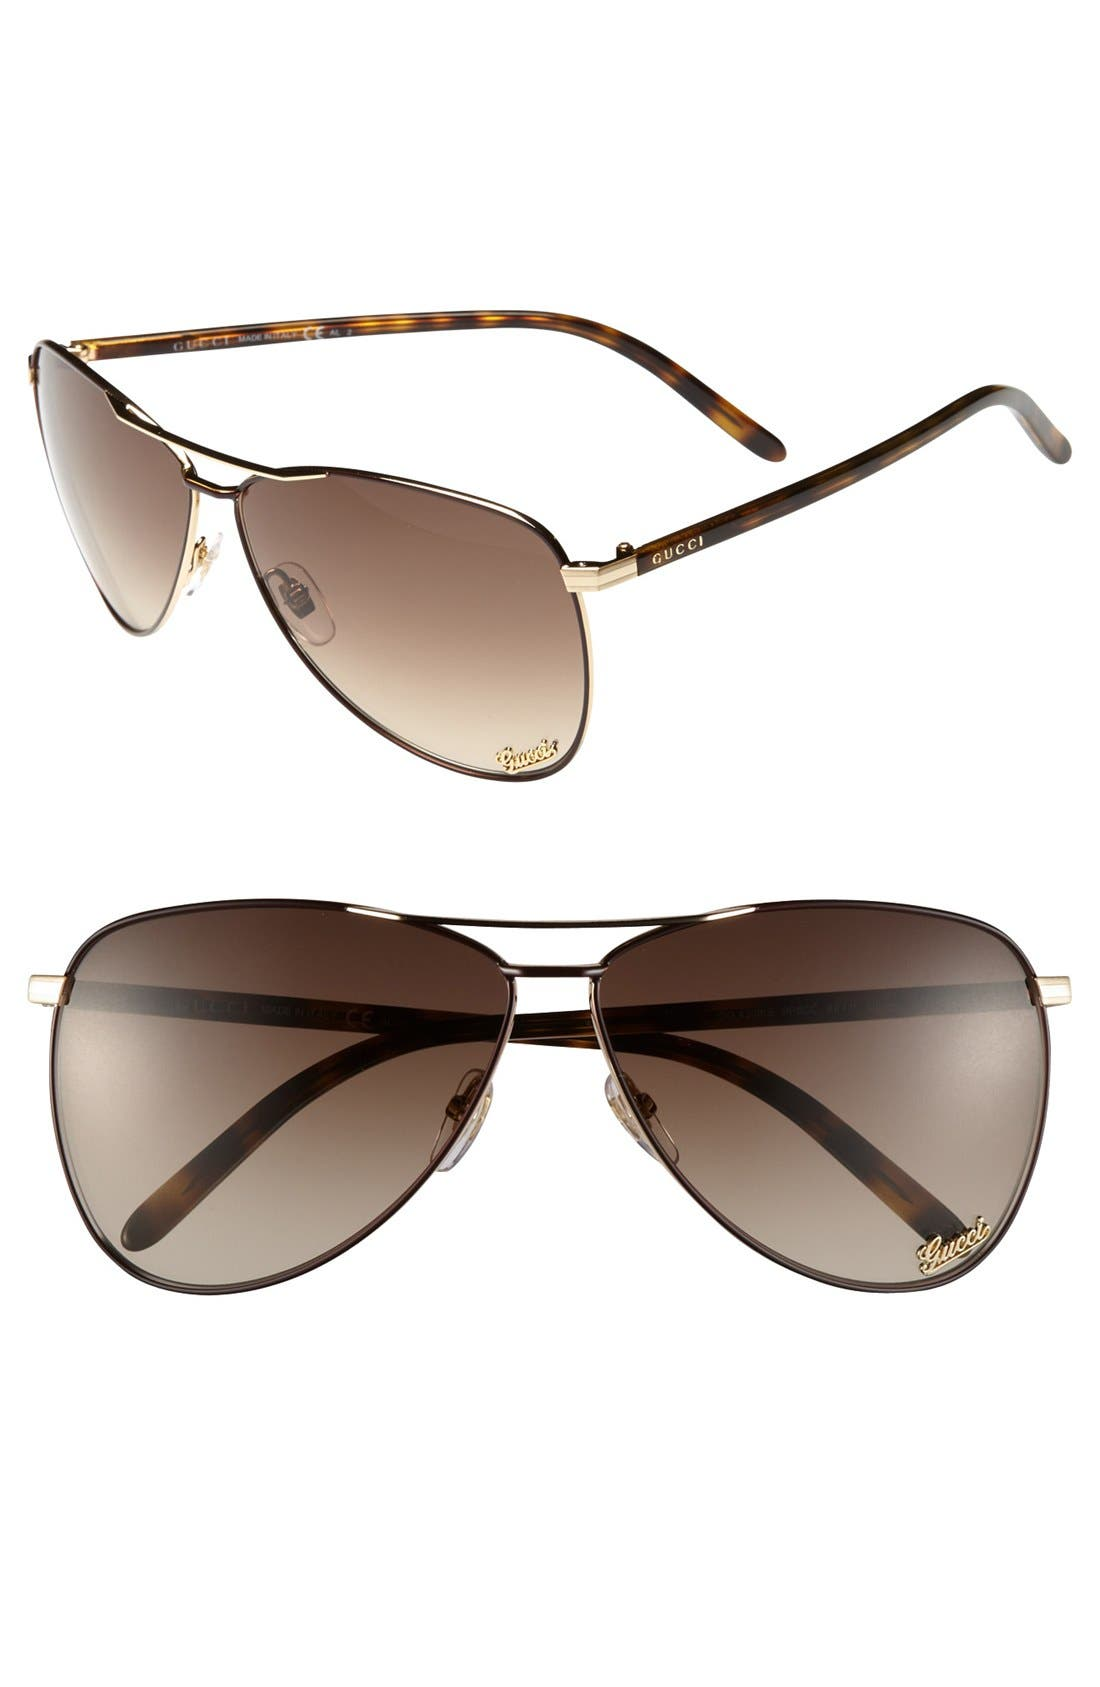 Alternate Image 1 Selected - Gucci 62mm Metal Aviator Sunglasses